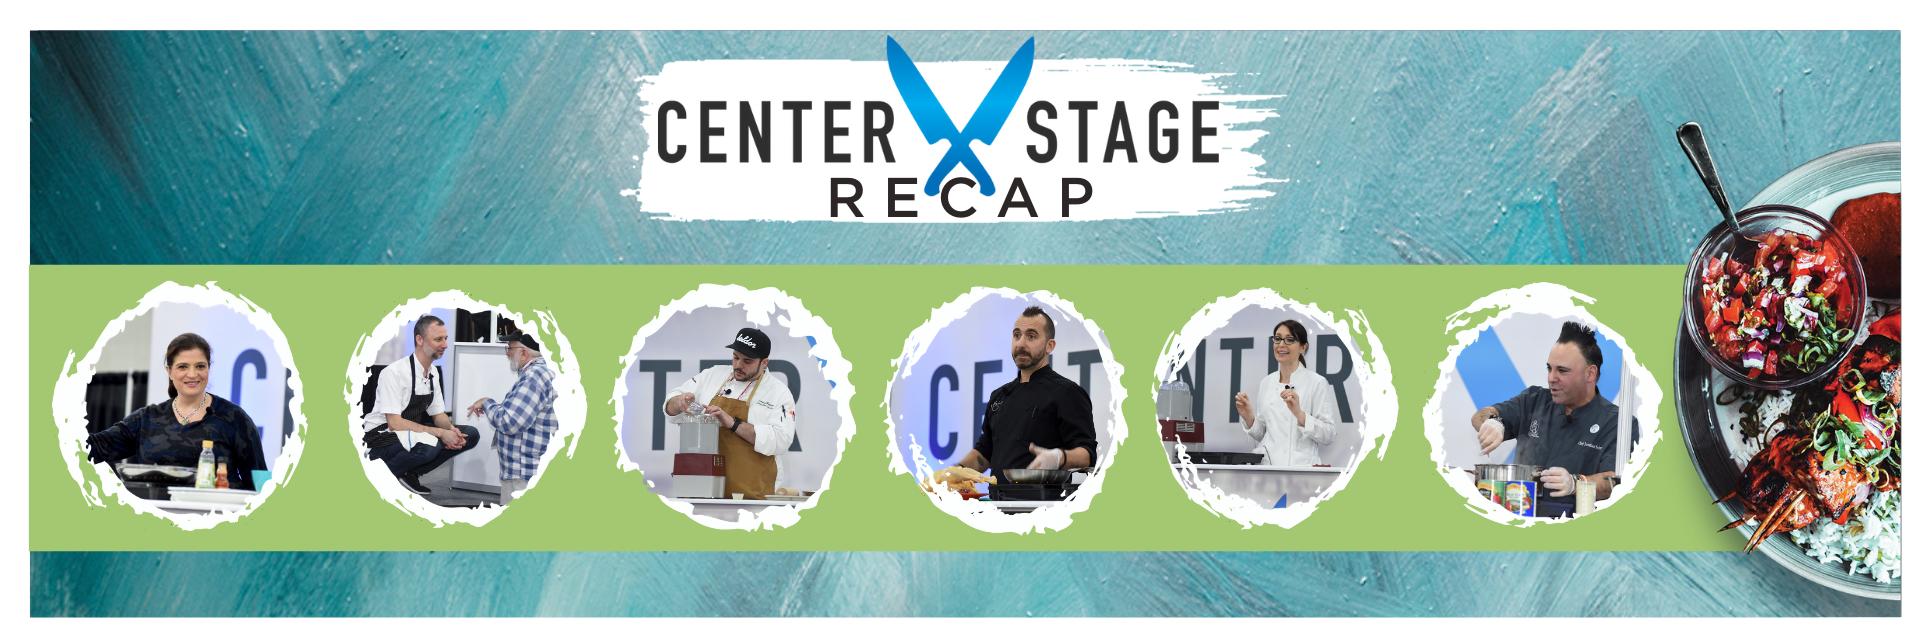 Center Stage 2020 Recap